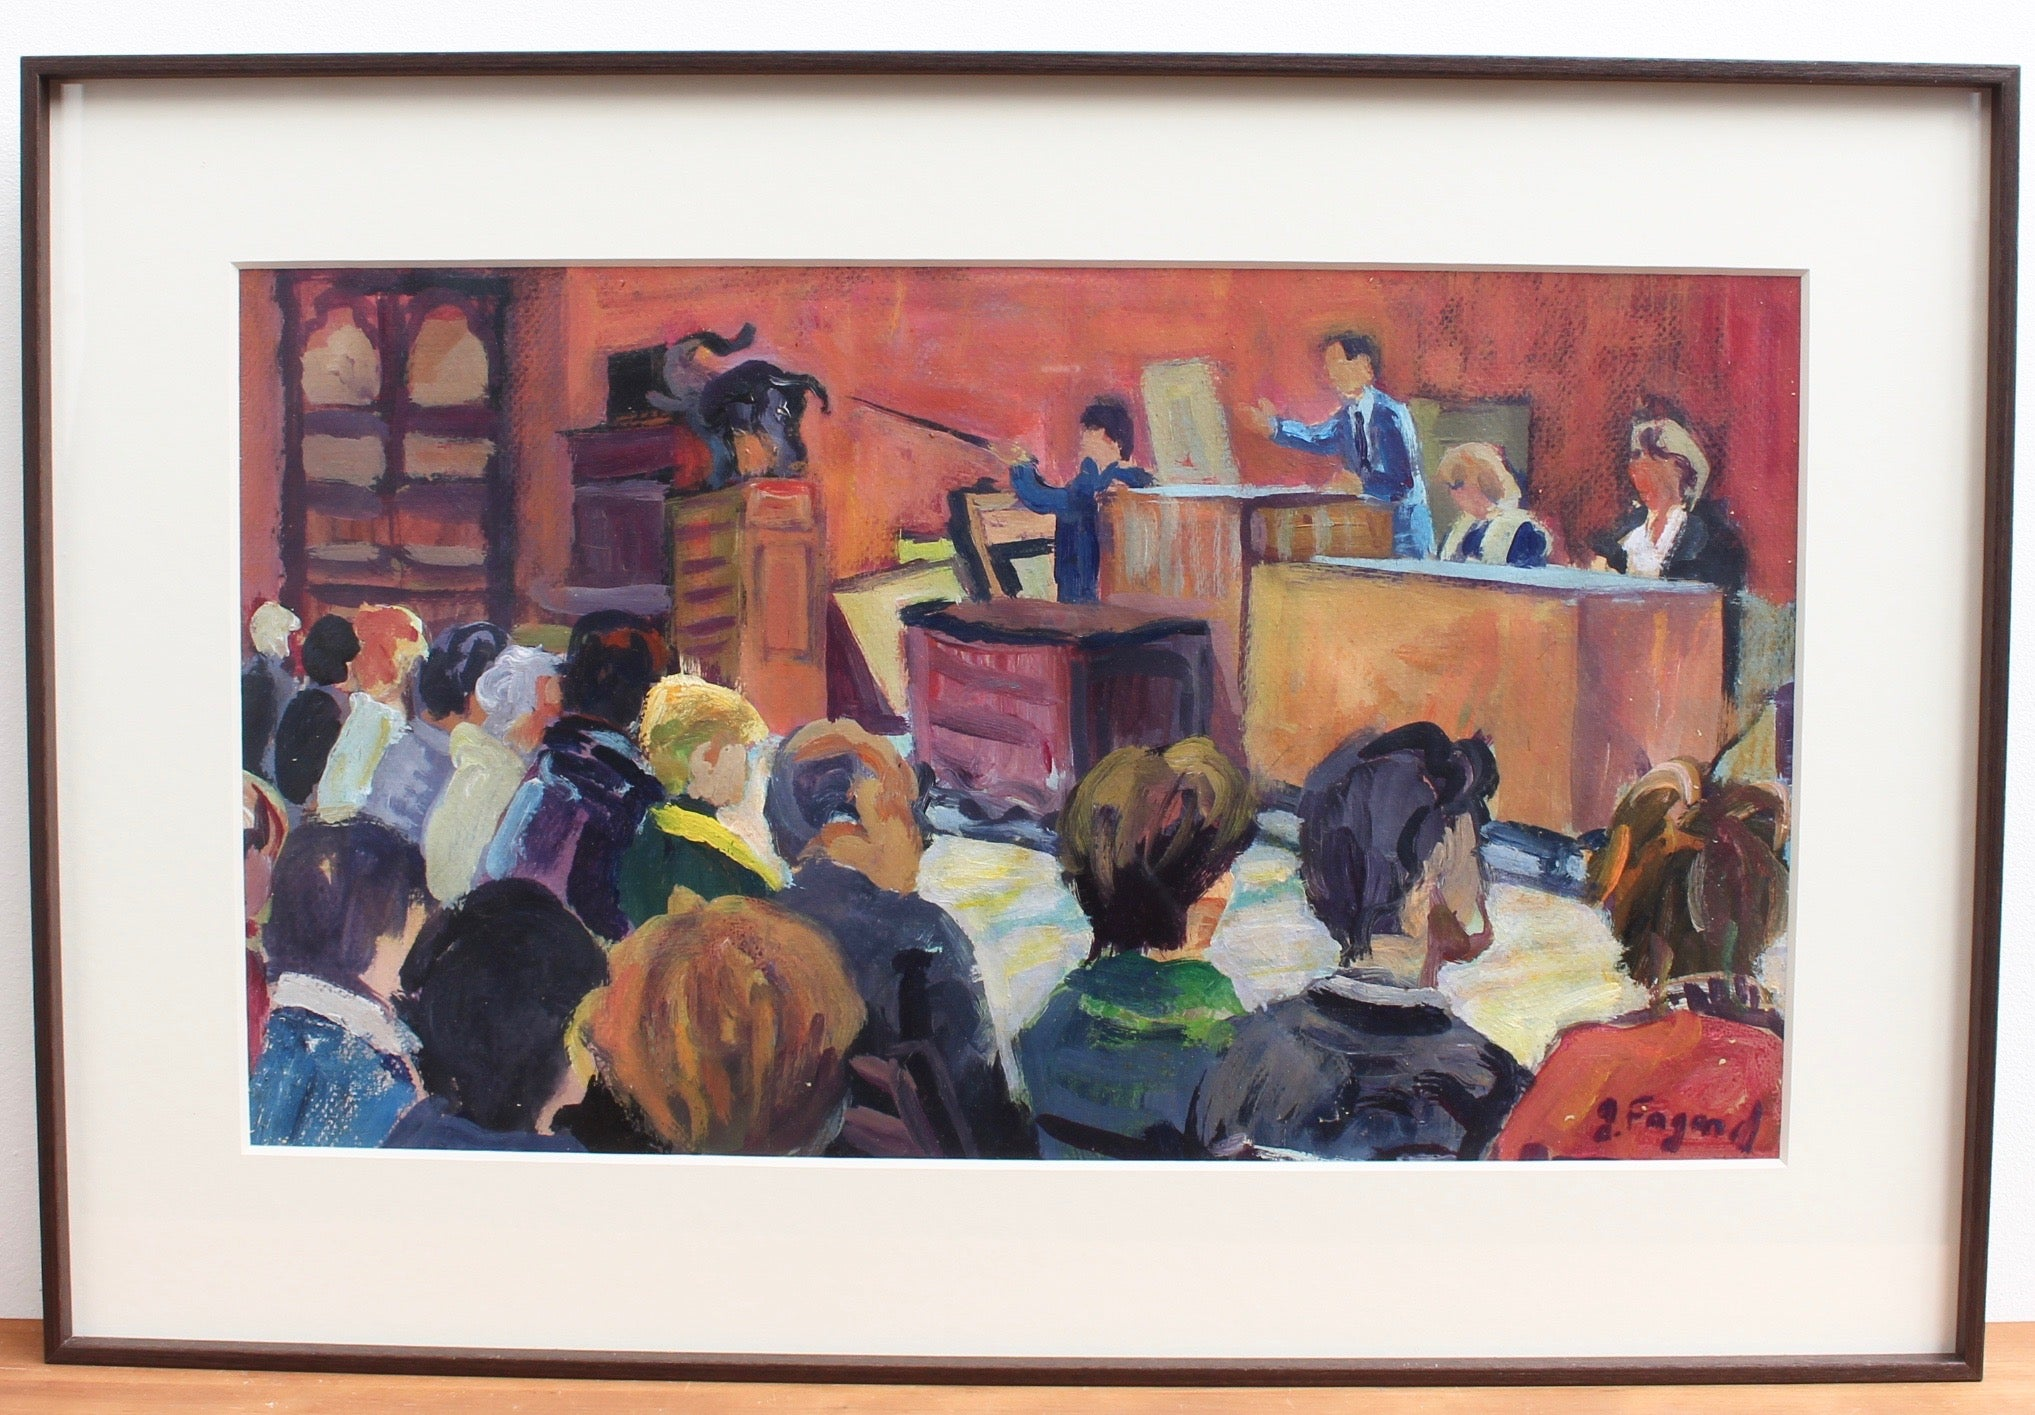 'The Auction House' by Gerard Fagard (circa 1970s)